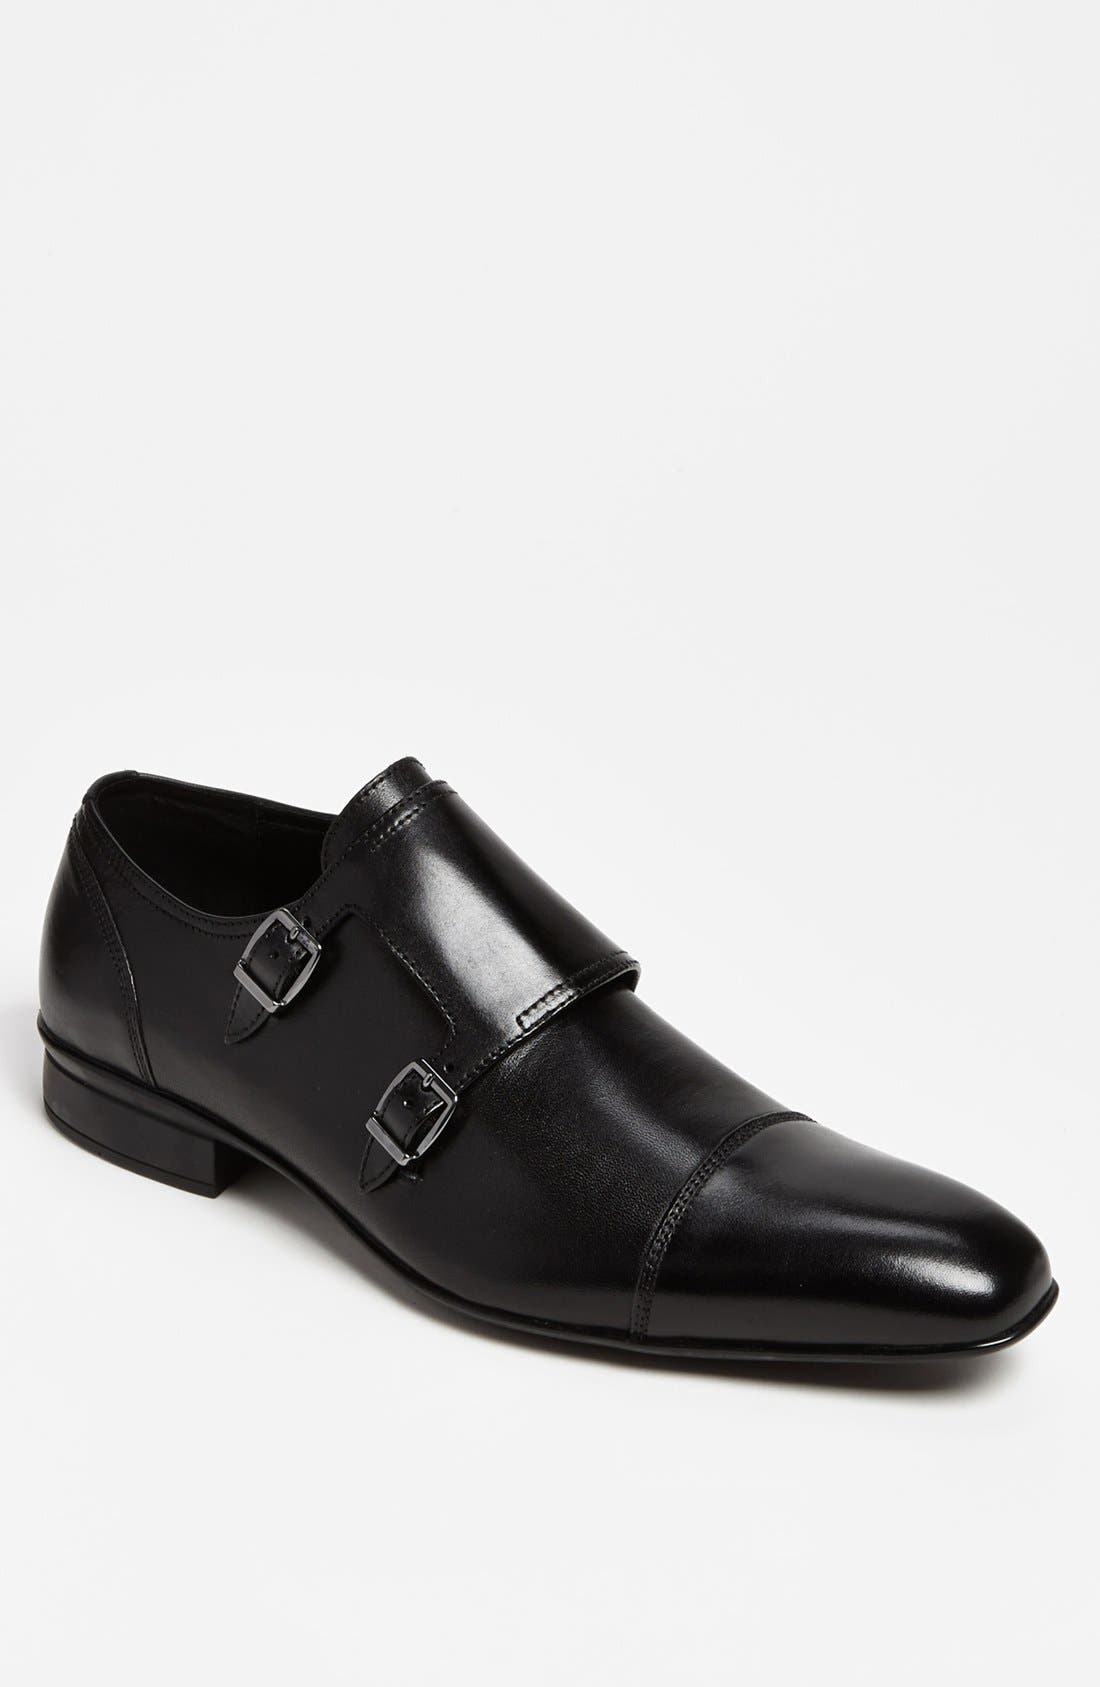 Main Image - Kenneth Cole New York 'Highest Rate-d' Double Monk Strap Slip-On